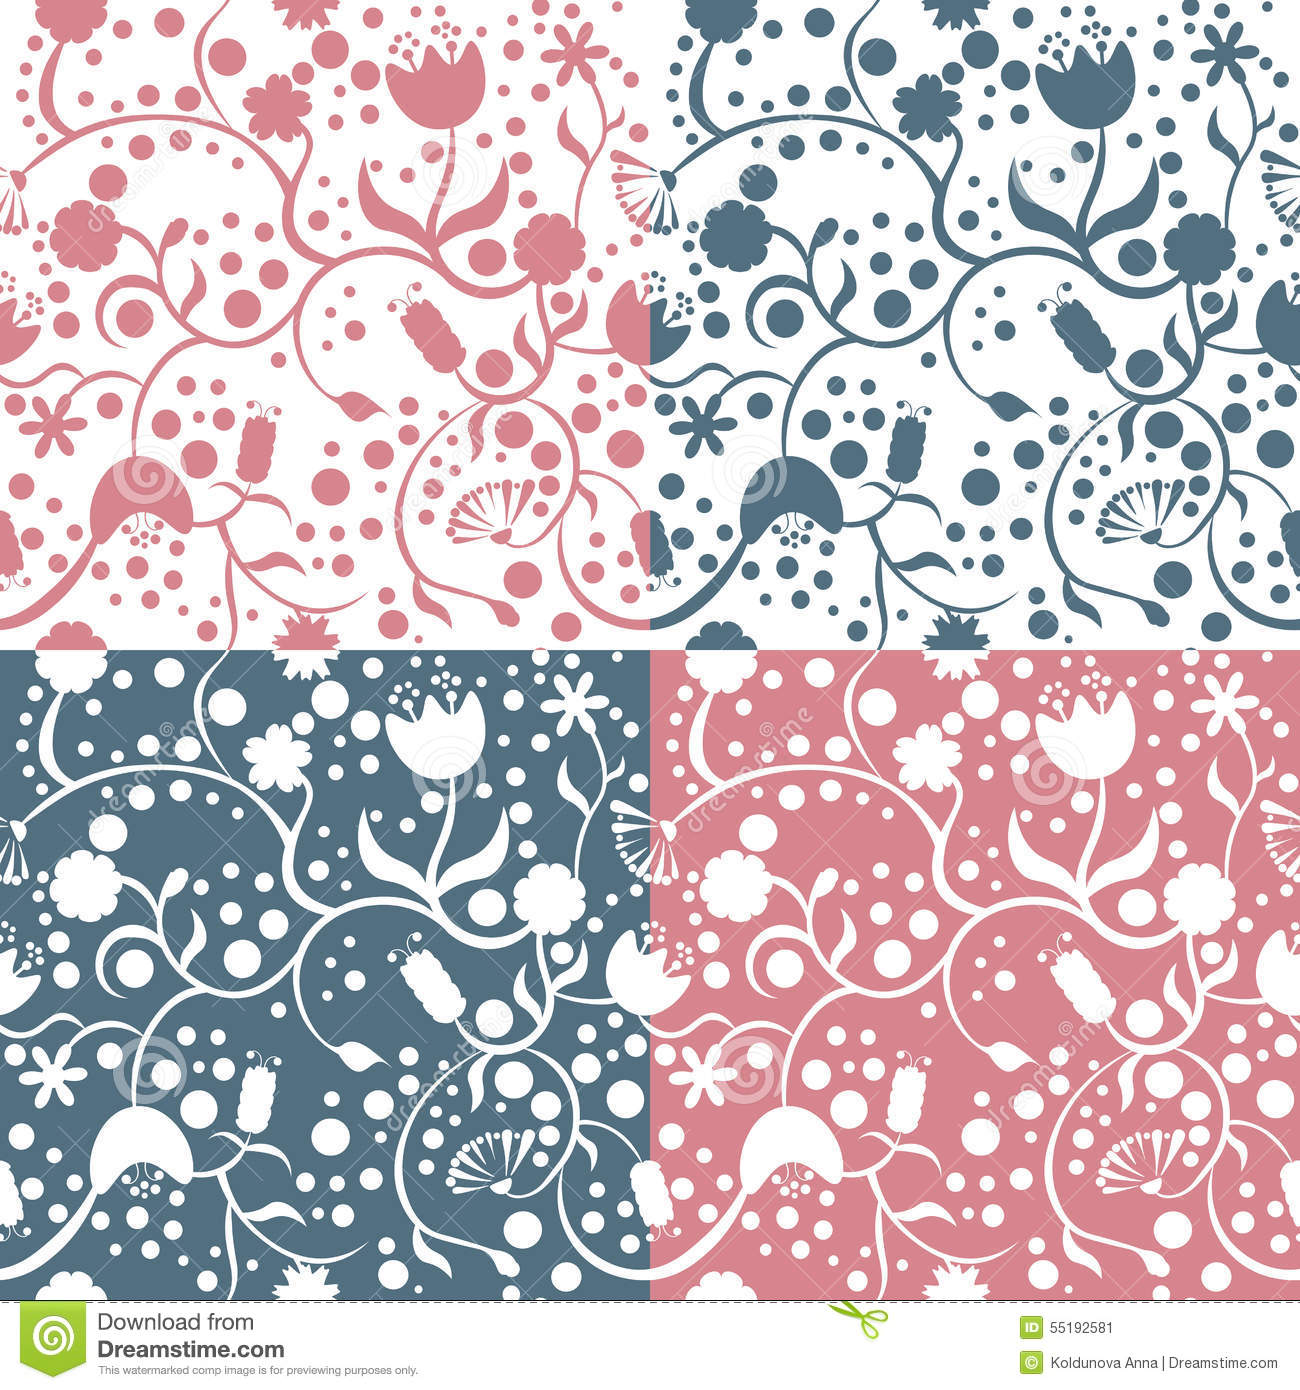 Four Different Types Of Floral Patterns Stock Vector